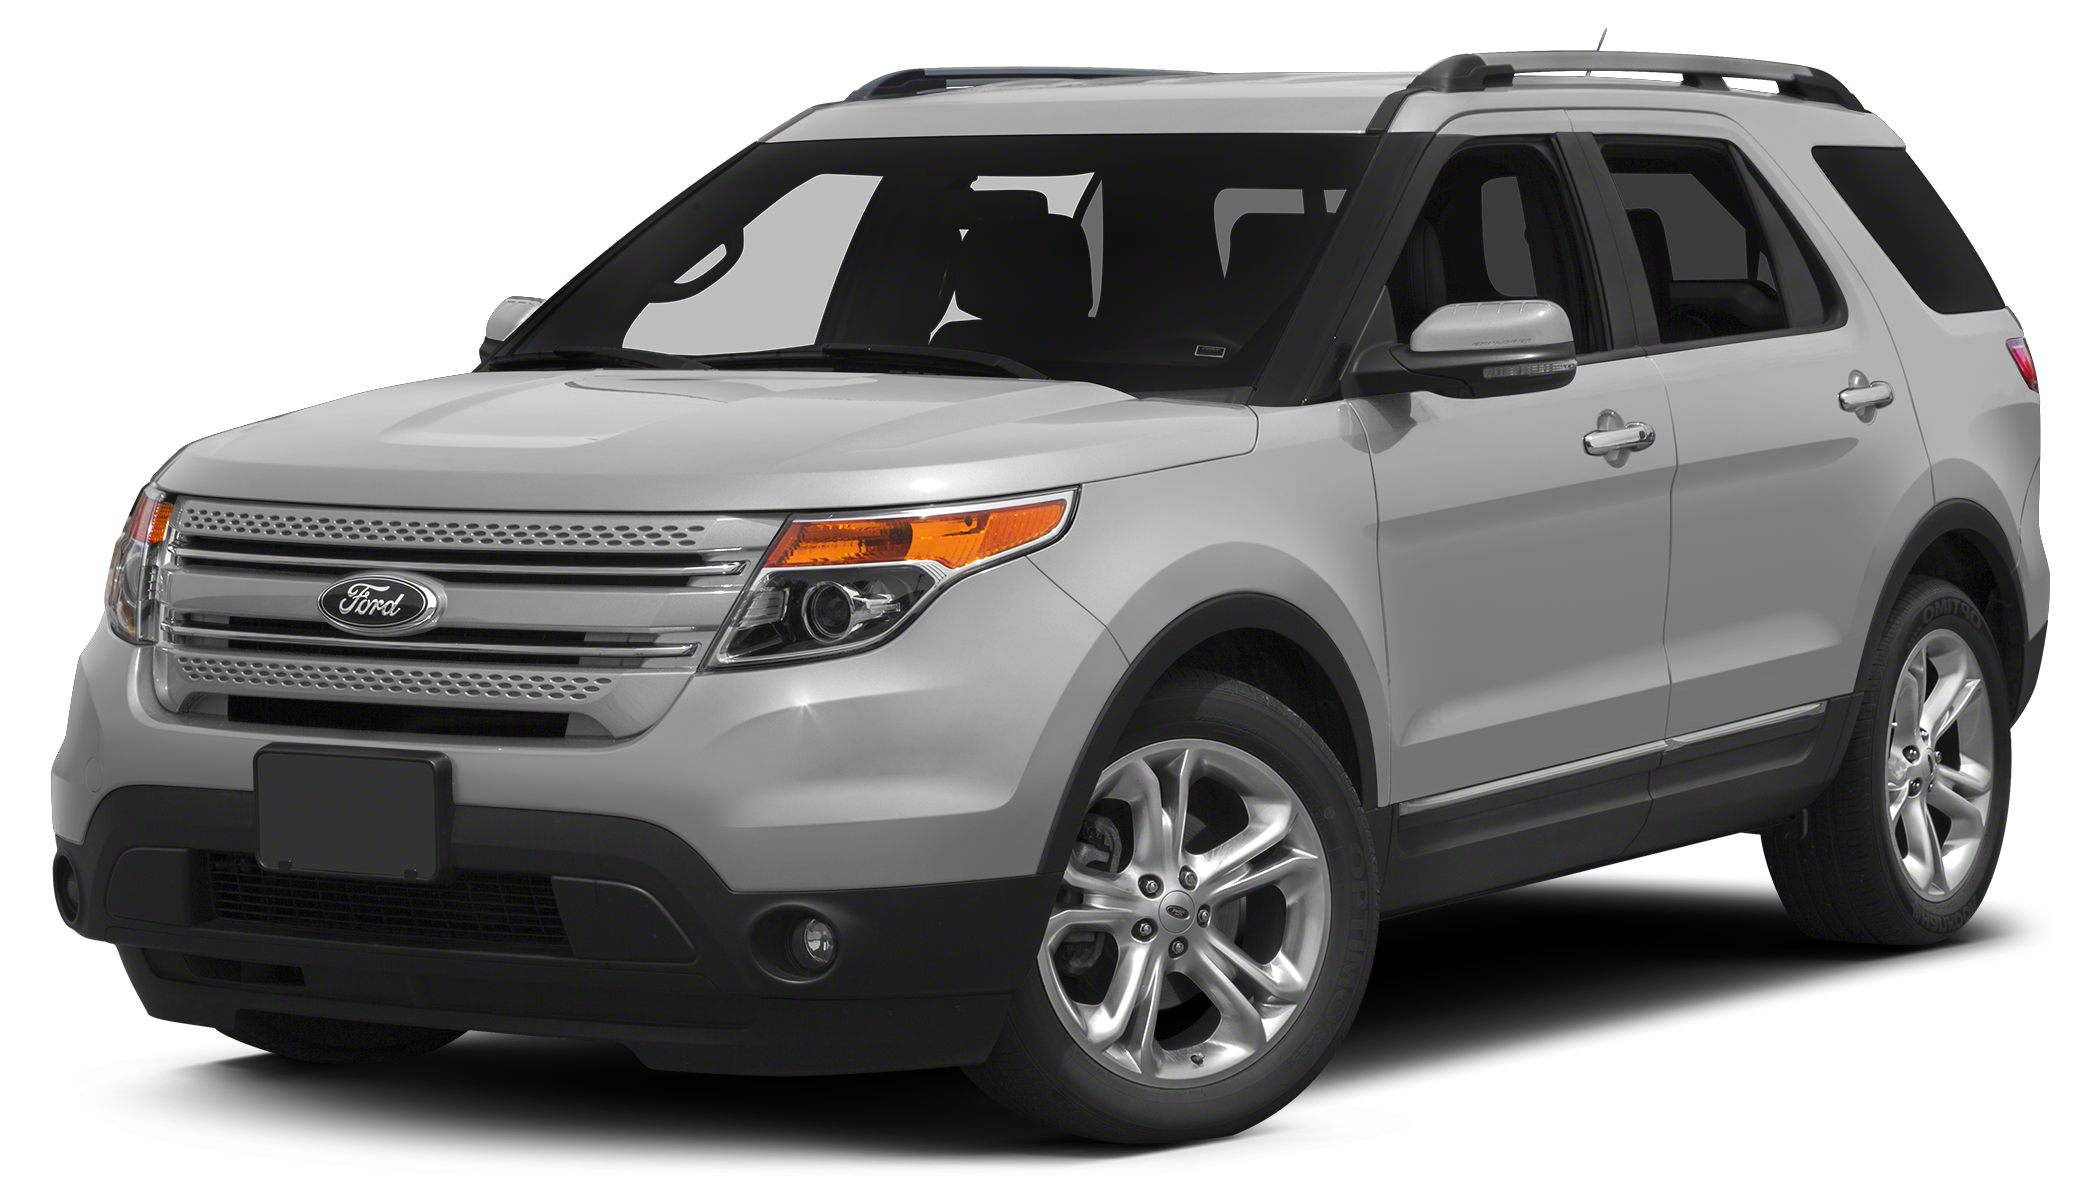 2014 Ford Explorer Limited Auto Check 1 Owner LIMITED PACKAGE ALL WHEEL DRIVE LUXURY SEATING PA